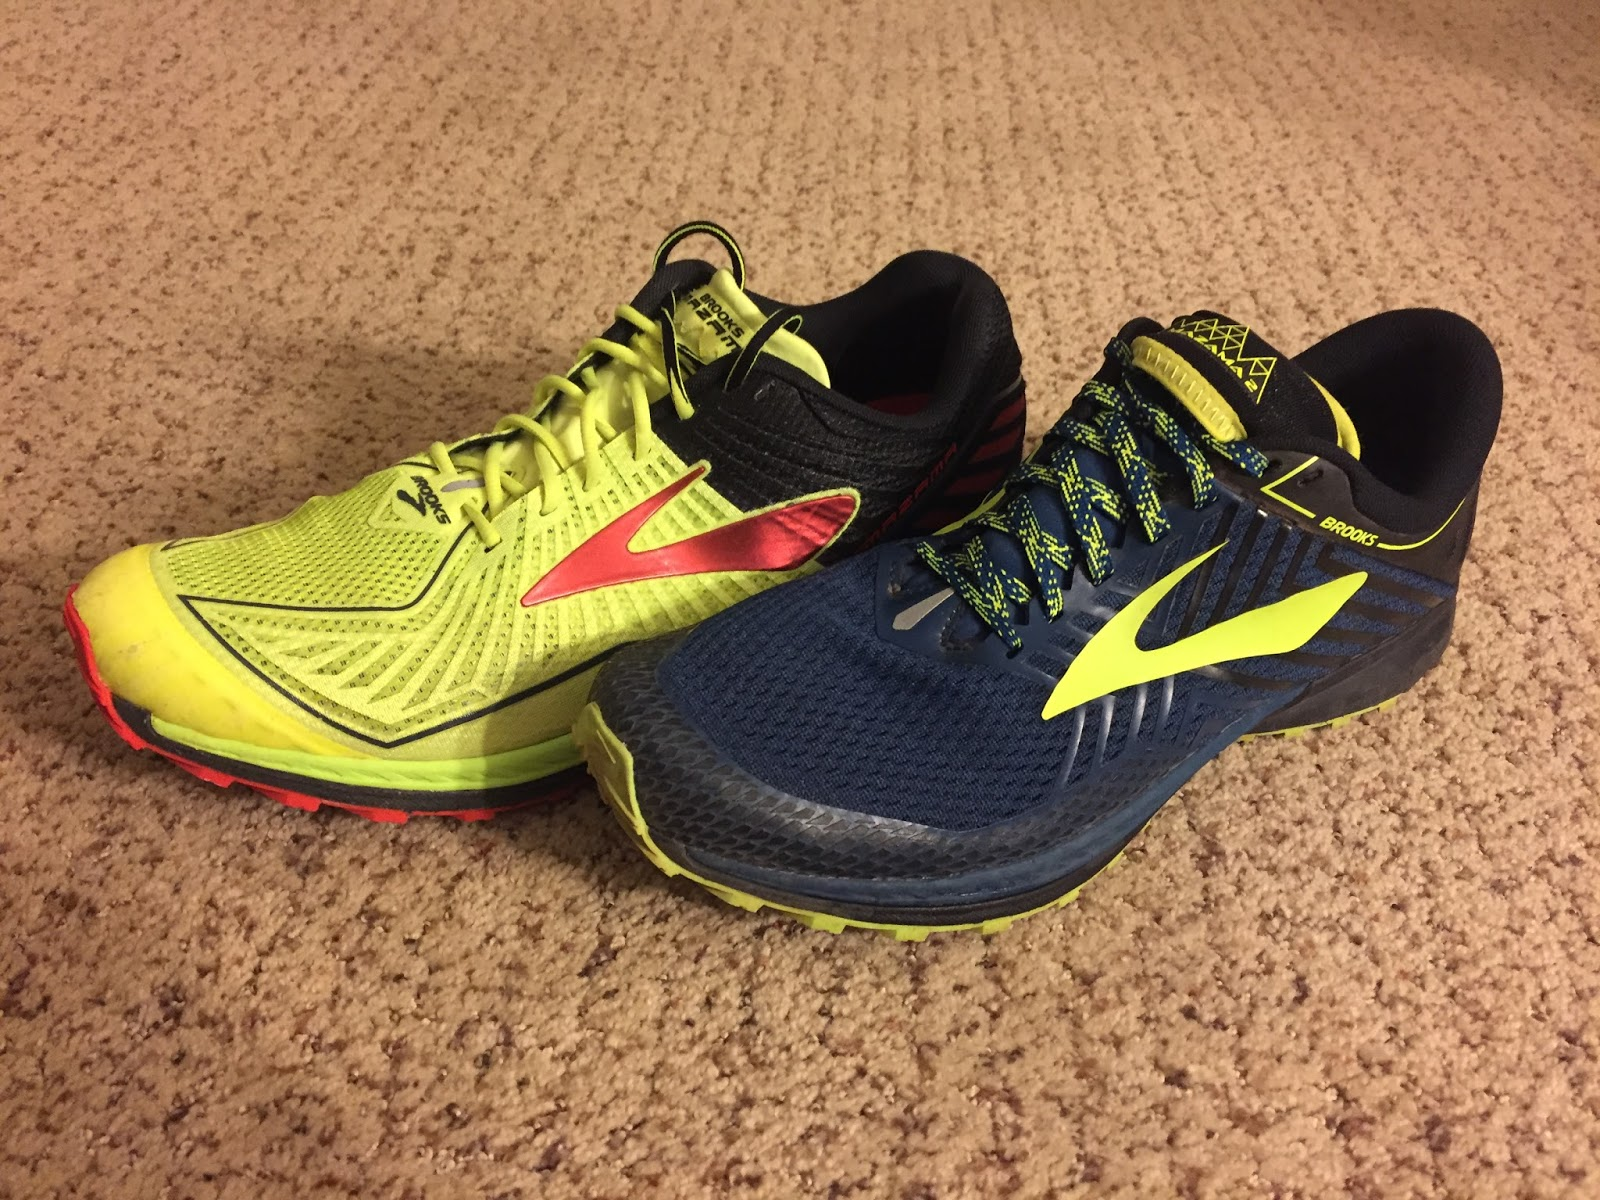 a16456bac8b Road Trail Run  Brooks Running Mazama 2 Review - Fastest Uphill ...